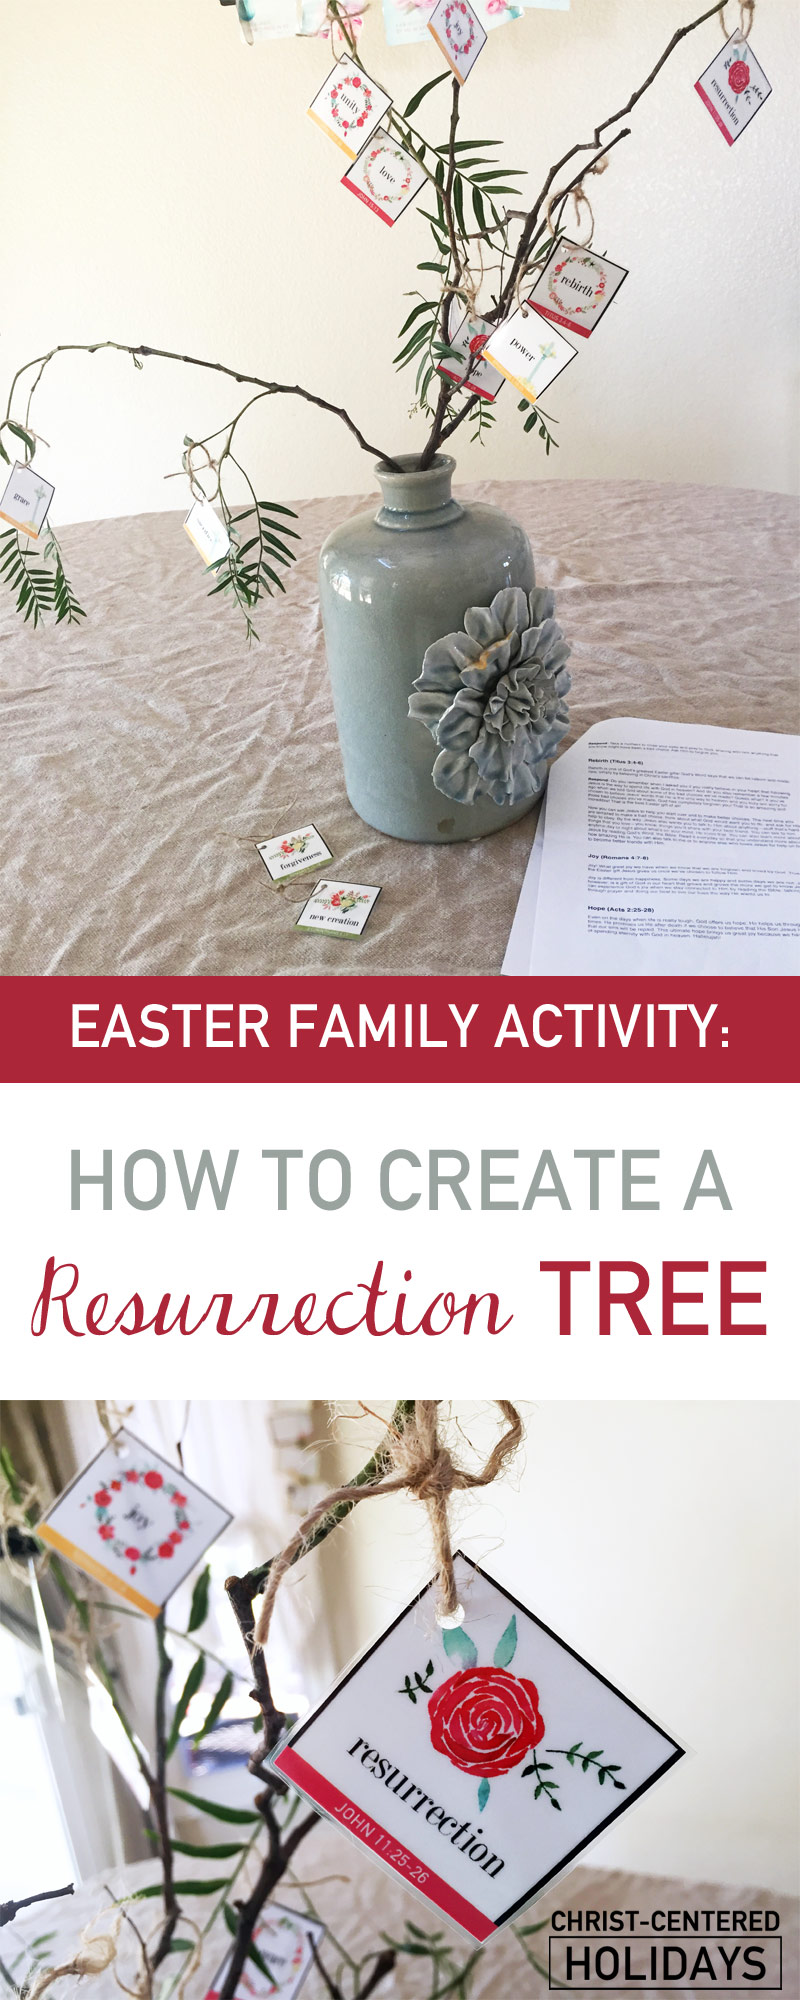 resurrection lessons kids | resurrection children lesson | jesus resurrection activities kids | jesus resurrection crafts kids | resurrection crafts | resurrection story children | lesson resurrection kids | resurrection lessons kids | resurrection lesson plans | resurrection lesson kids | christian easter egg hunt alternatives | easter crafts kids | Easter games kids | easter activities | easter activities for kids